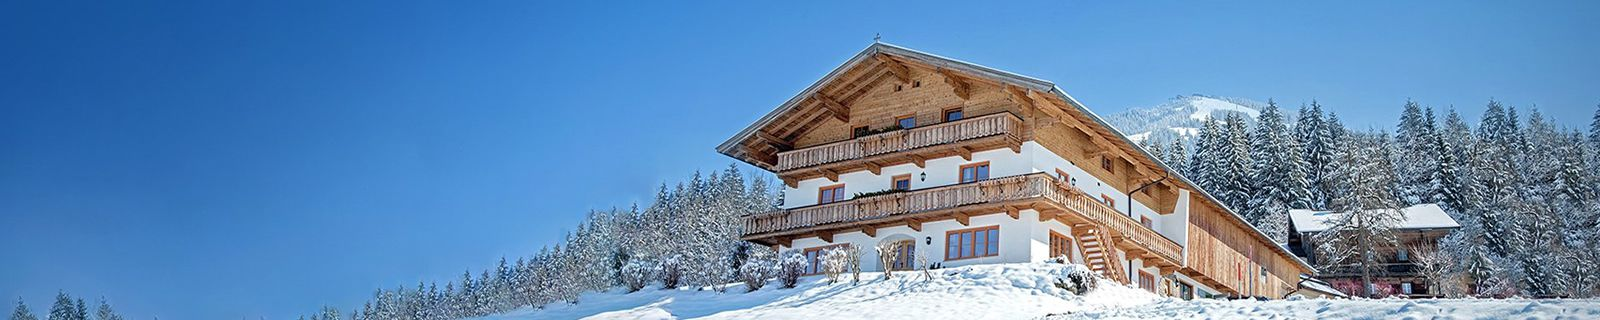 accommodatie wintersport